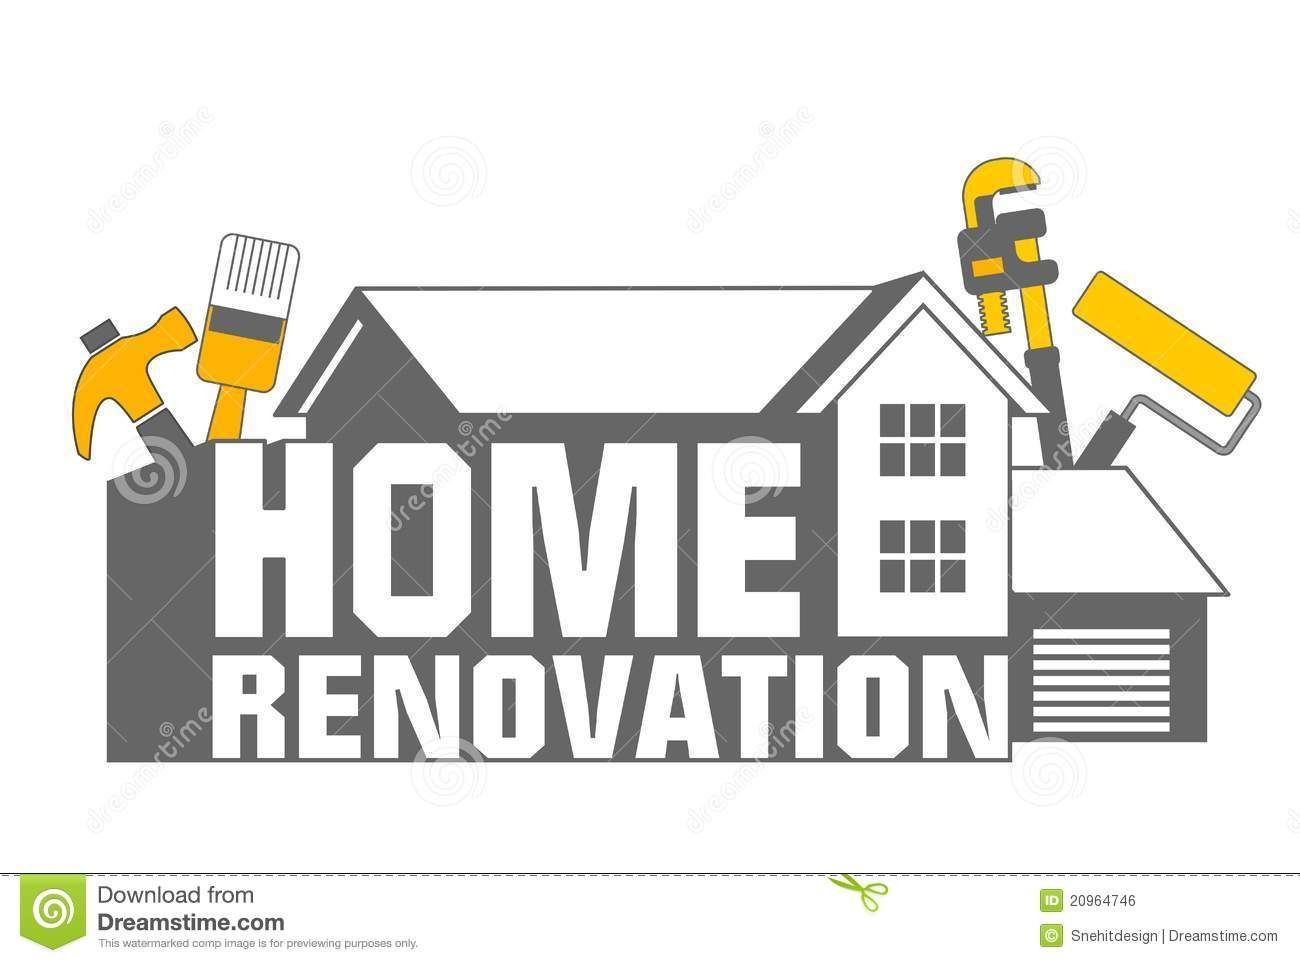 Home Renovation Clip Art I really want this..